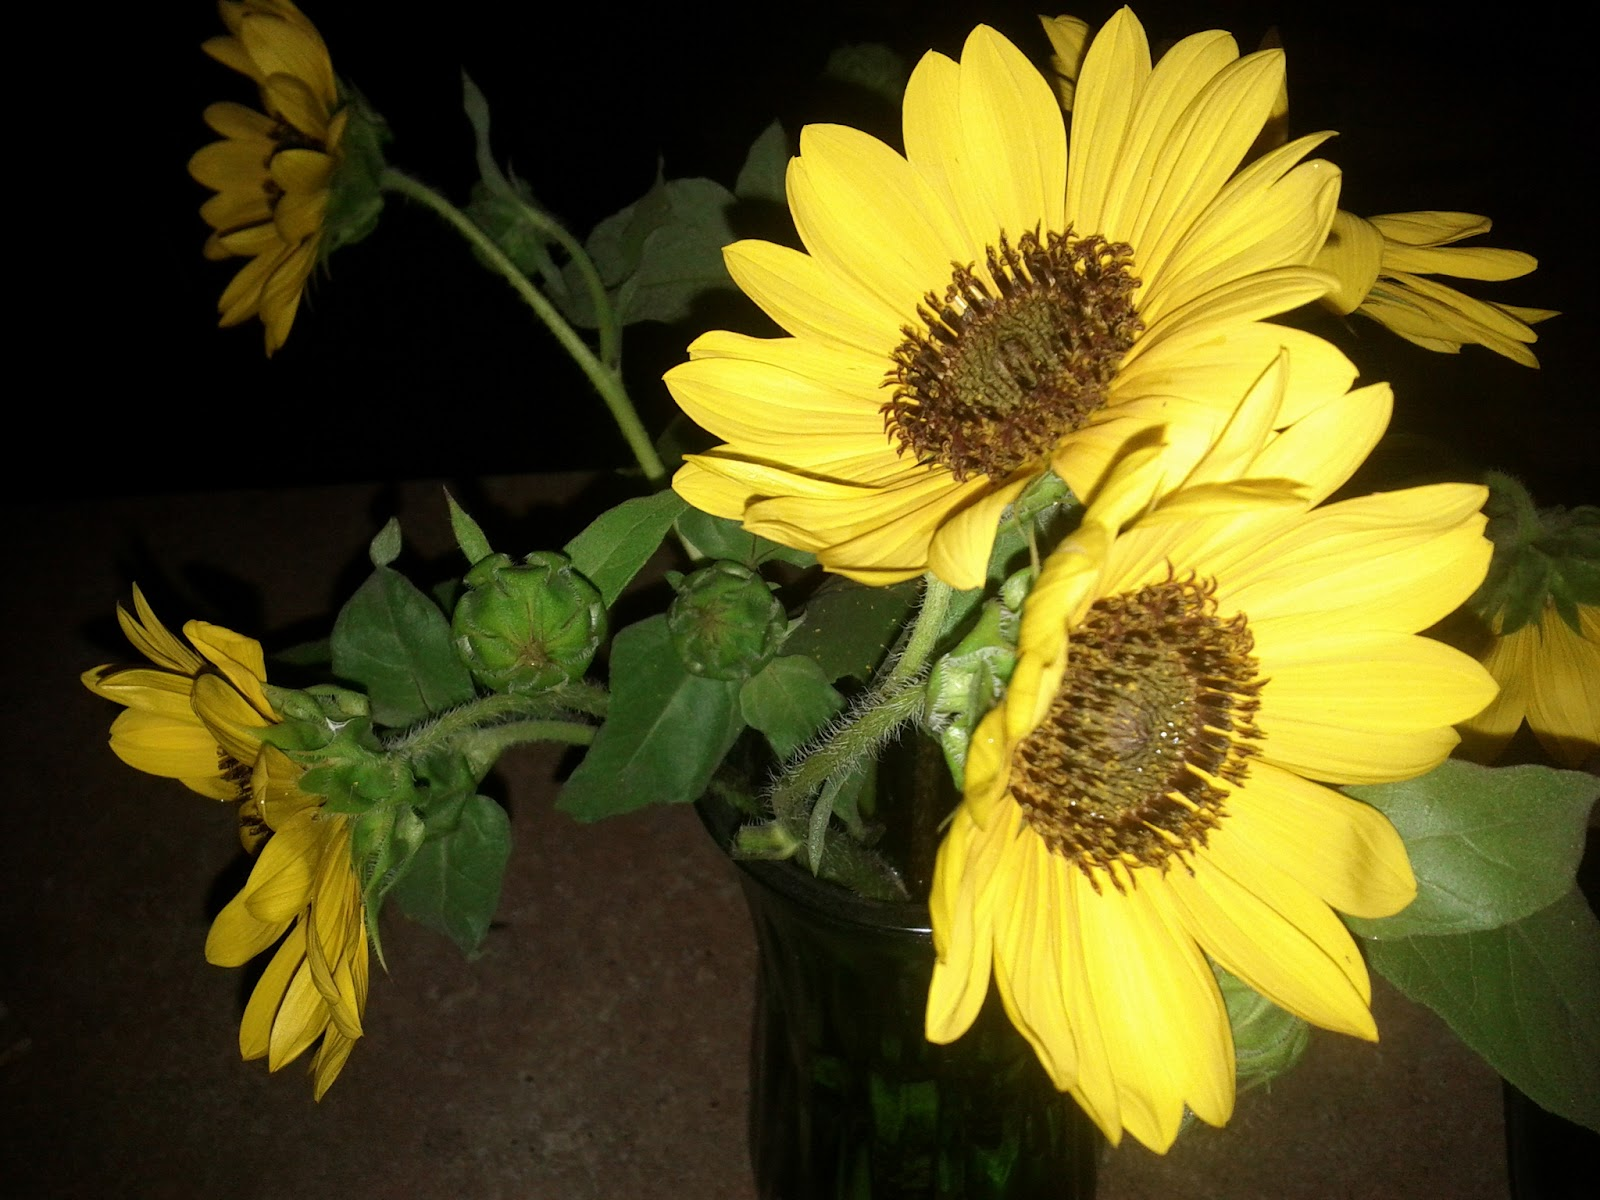 Bouquets - IMG_20120619_002217.jpg